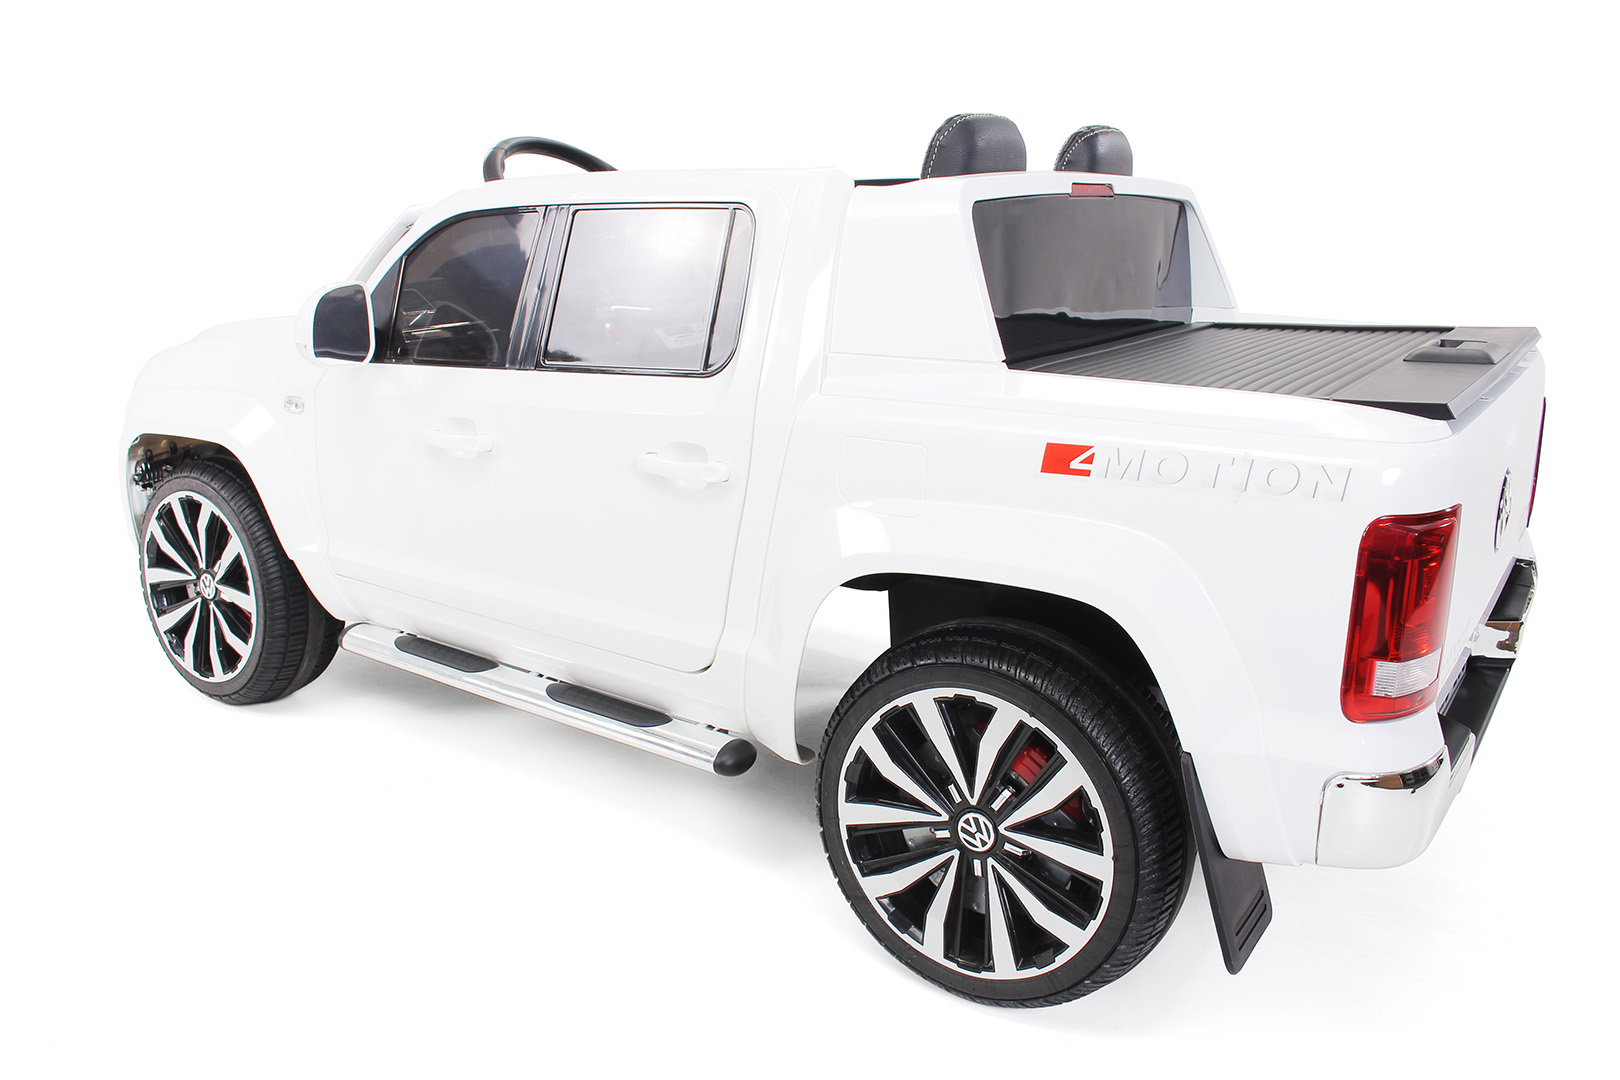 kinder elektroauto vw amarok lizenziert 2 x 35 watt. Black Bedroom Furniture Sets. Home Design Ideas